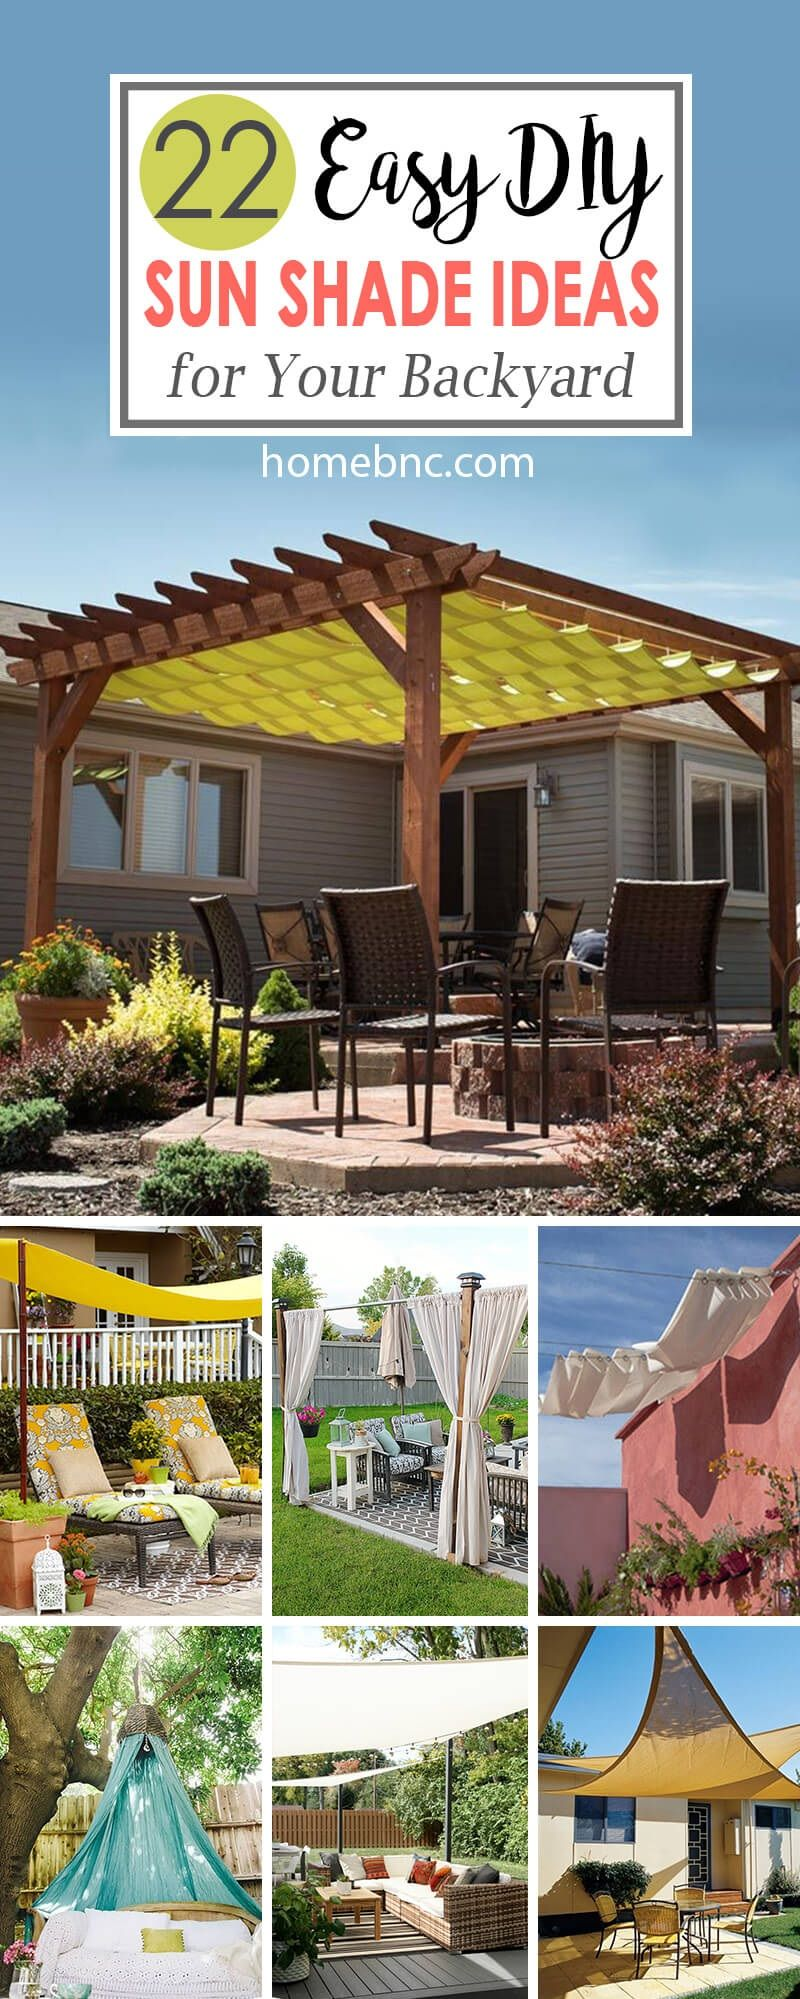 22 Easy Diy Sun Shade Ideas For Your Backyard Or Patio Patio Sun